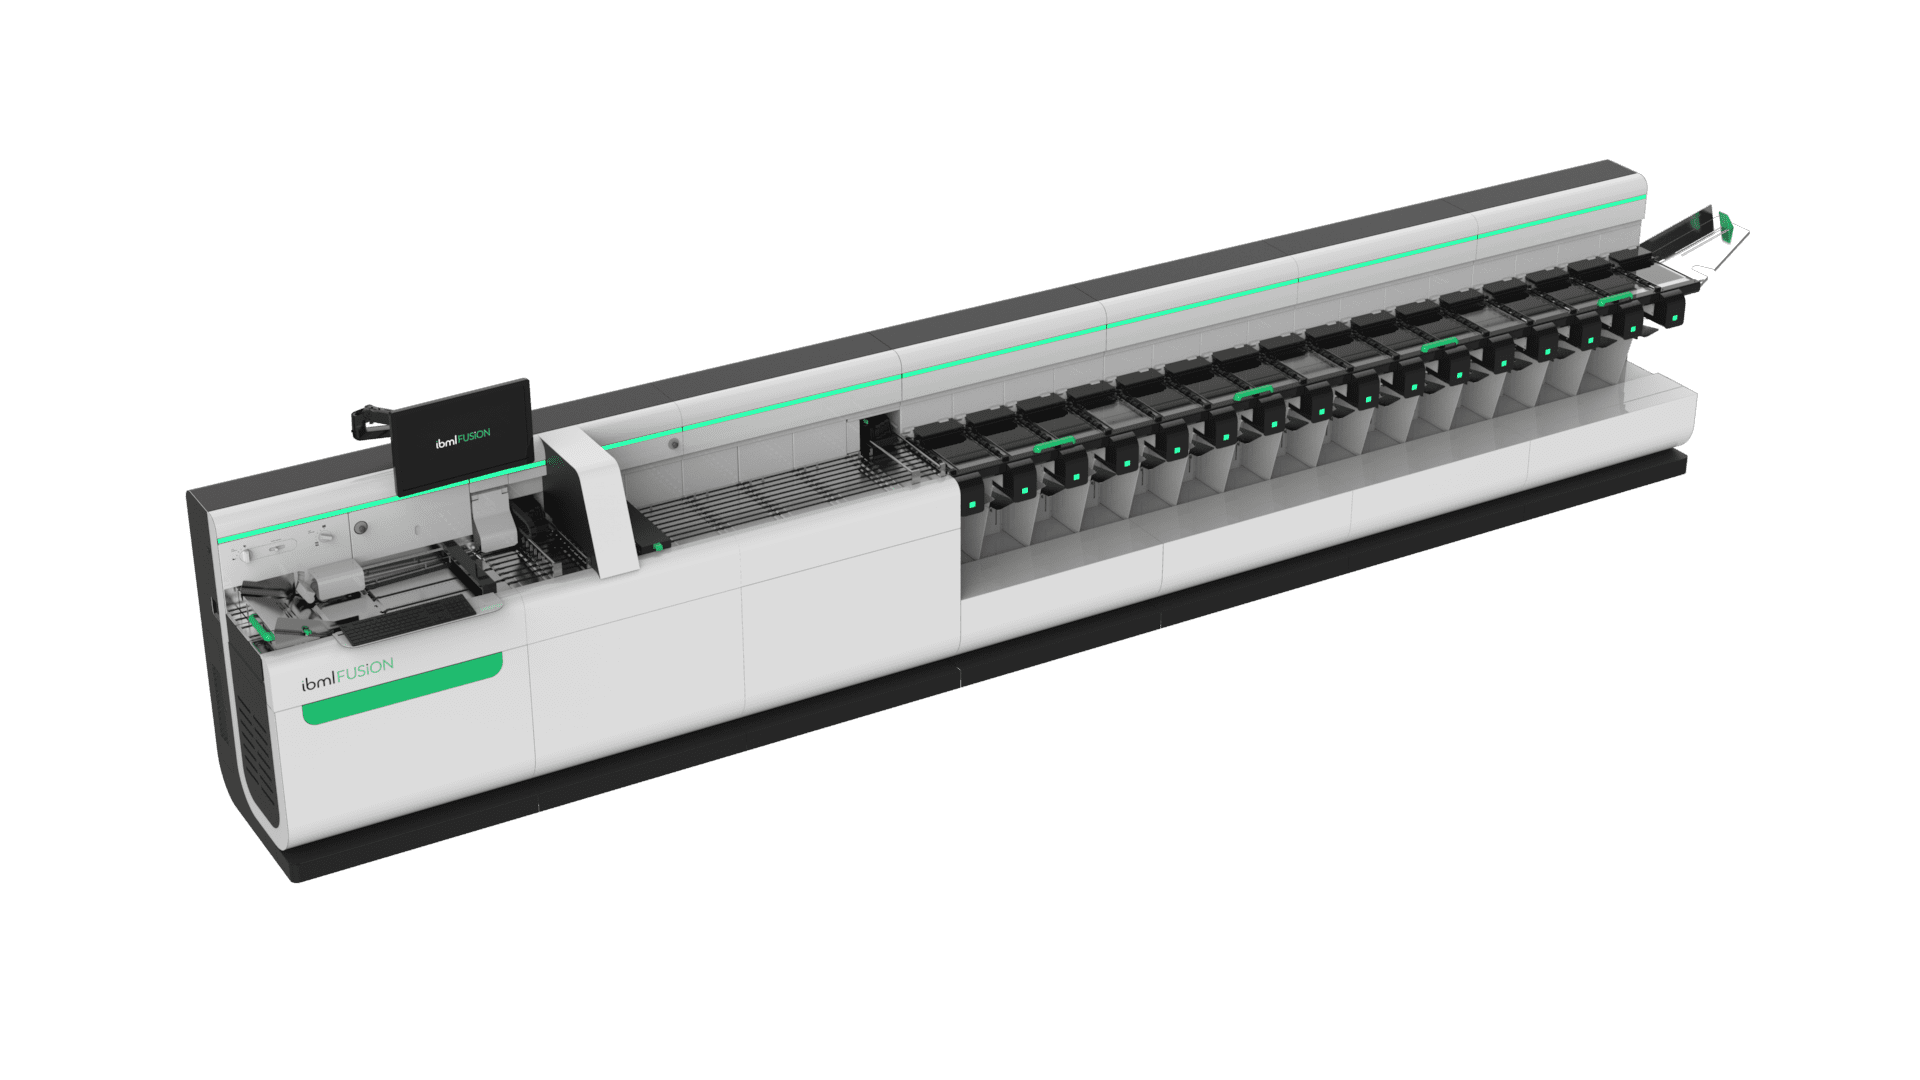 Document Scanner from ibml